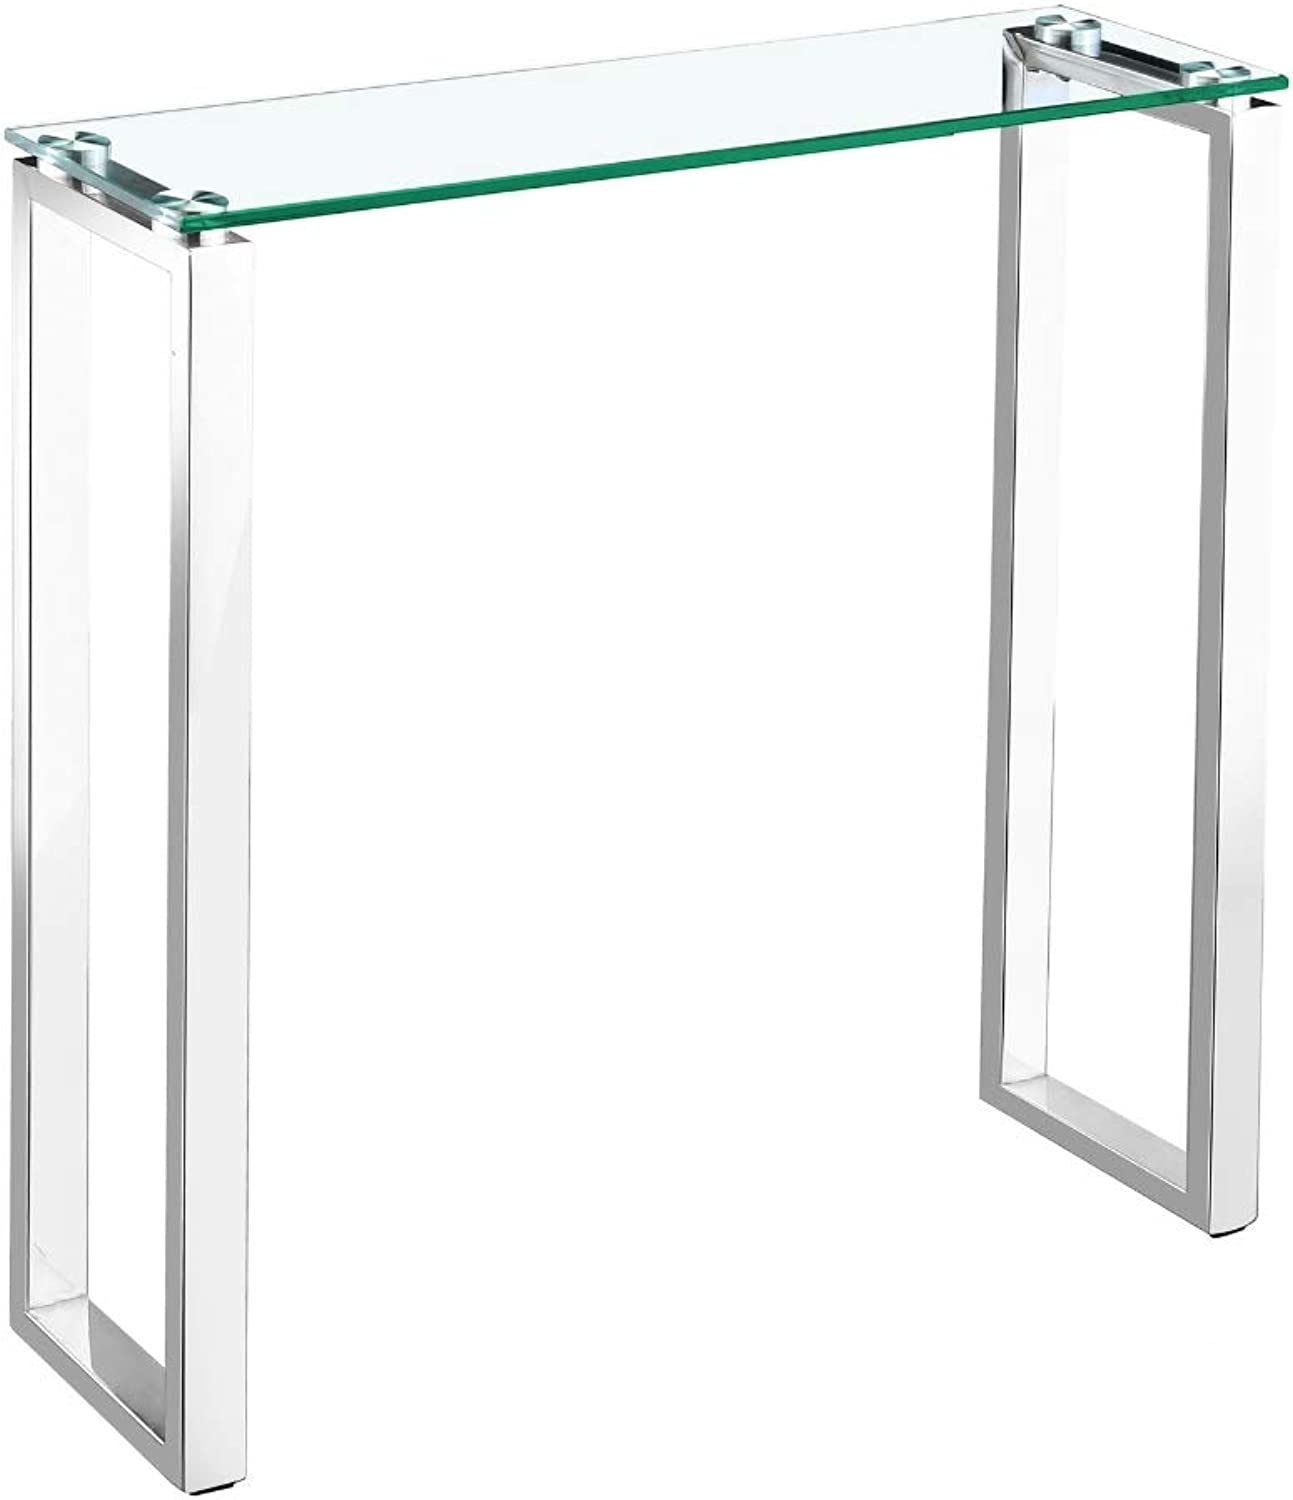 Take Me Home Furniture Hani Console Table (H30x W30x D8) in Chrome with Glass top, Rectangle Legs